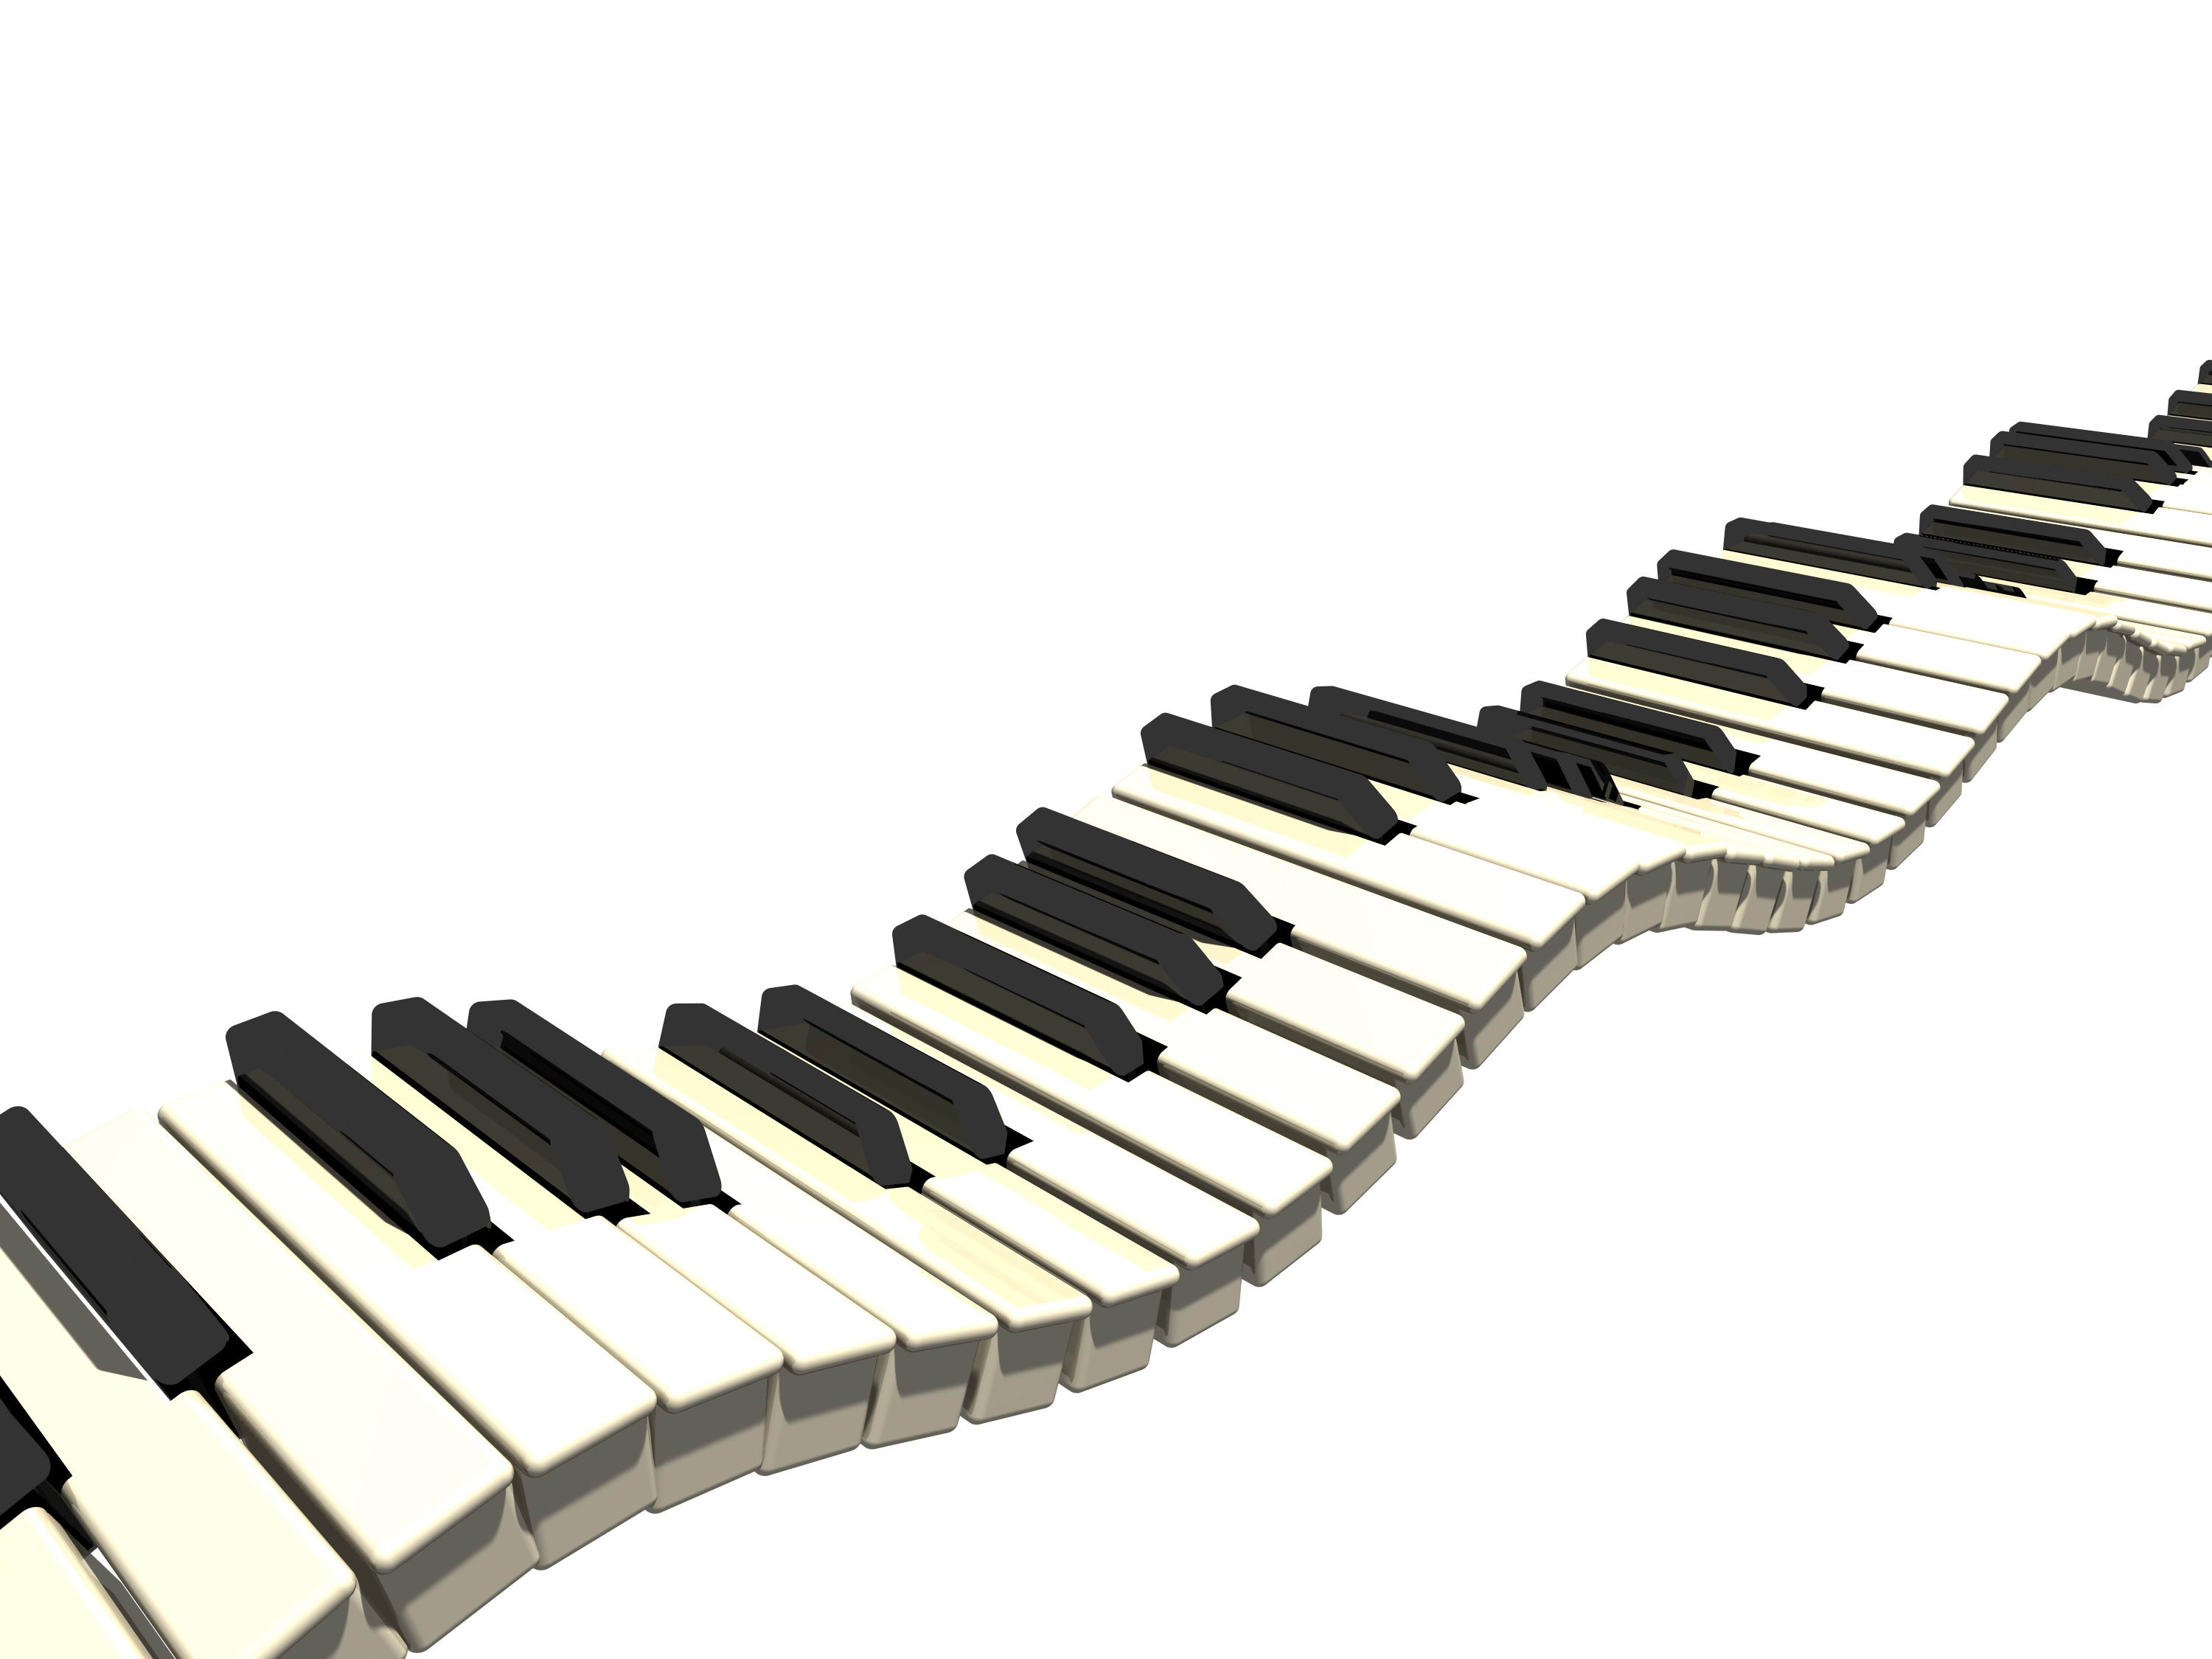 Wavy Piano Keys Clipart - Gallery